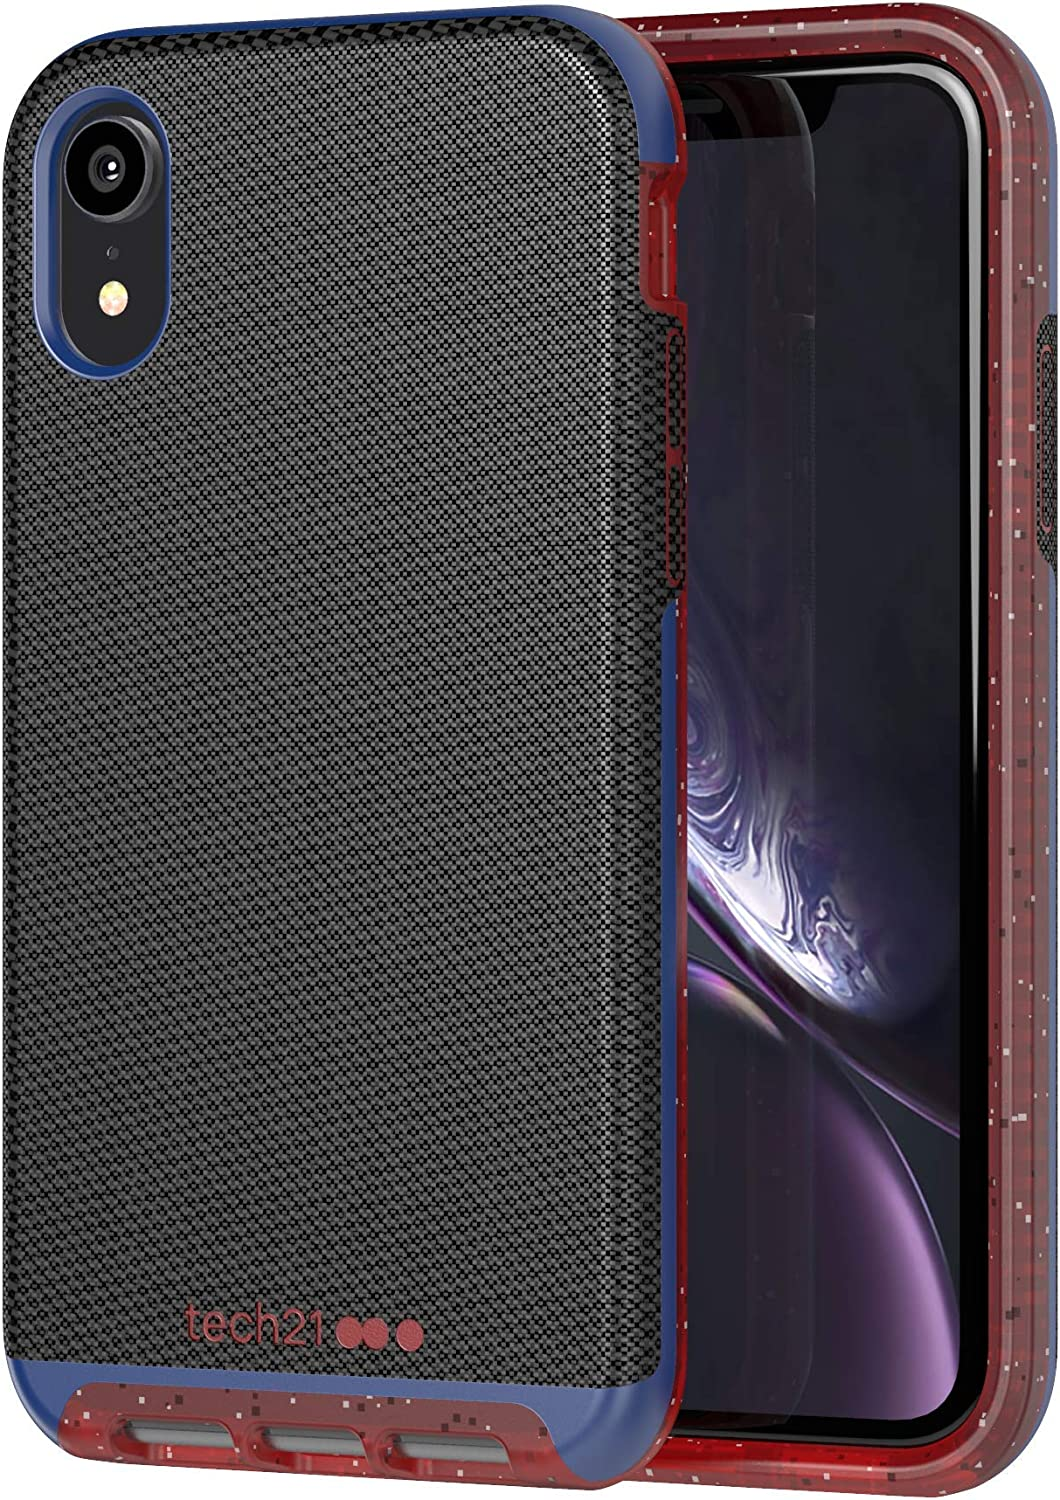 tech21 Evo Luxe Active Edition Phone Case Cover for Apple iPhone XR - Black